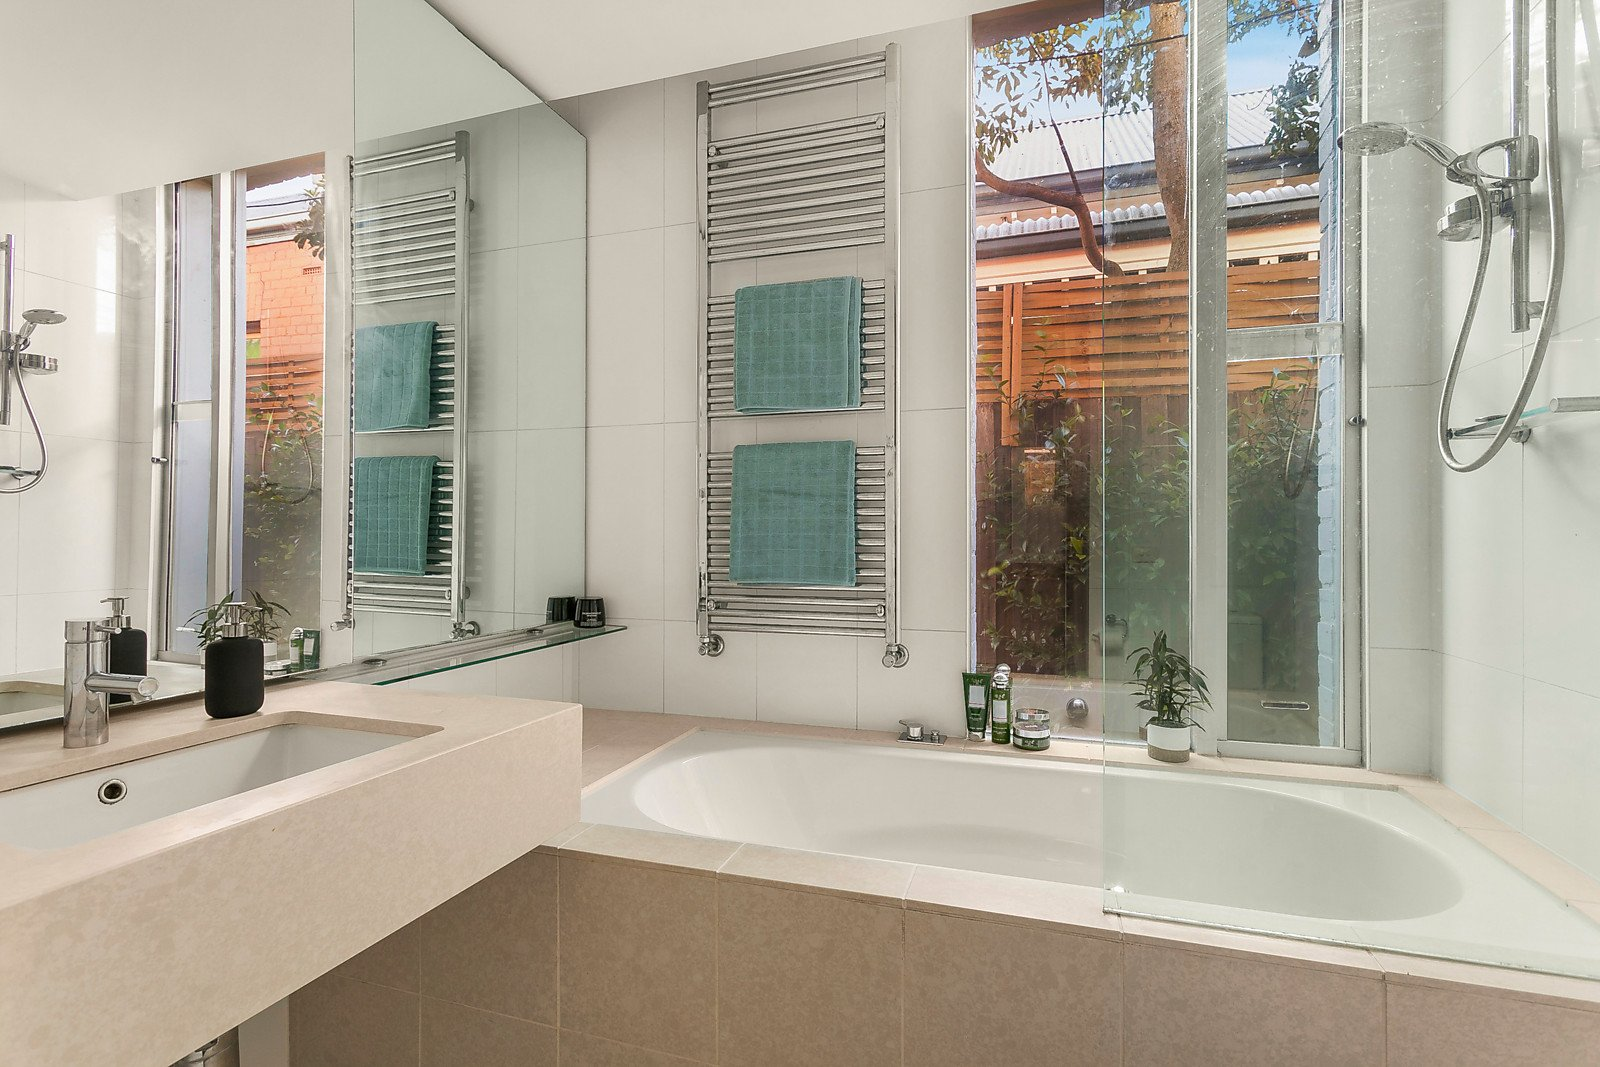 207 Holden Street, Fitzroy North, VIC, 3068 image 13